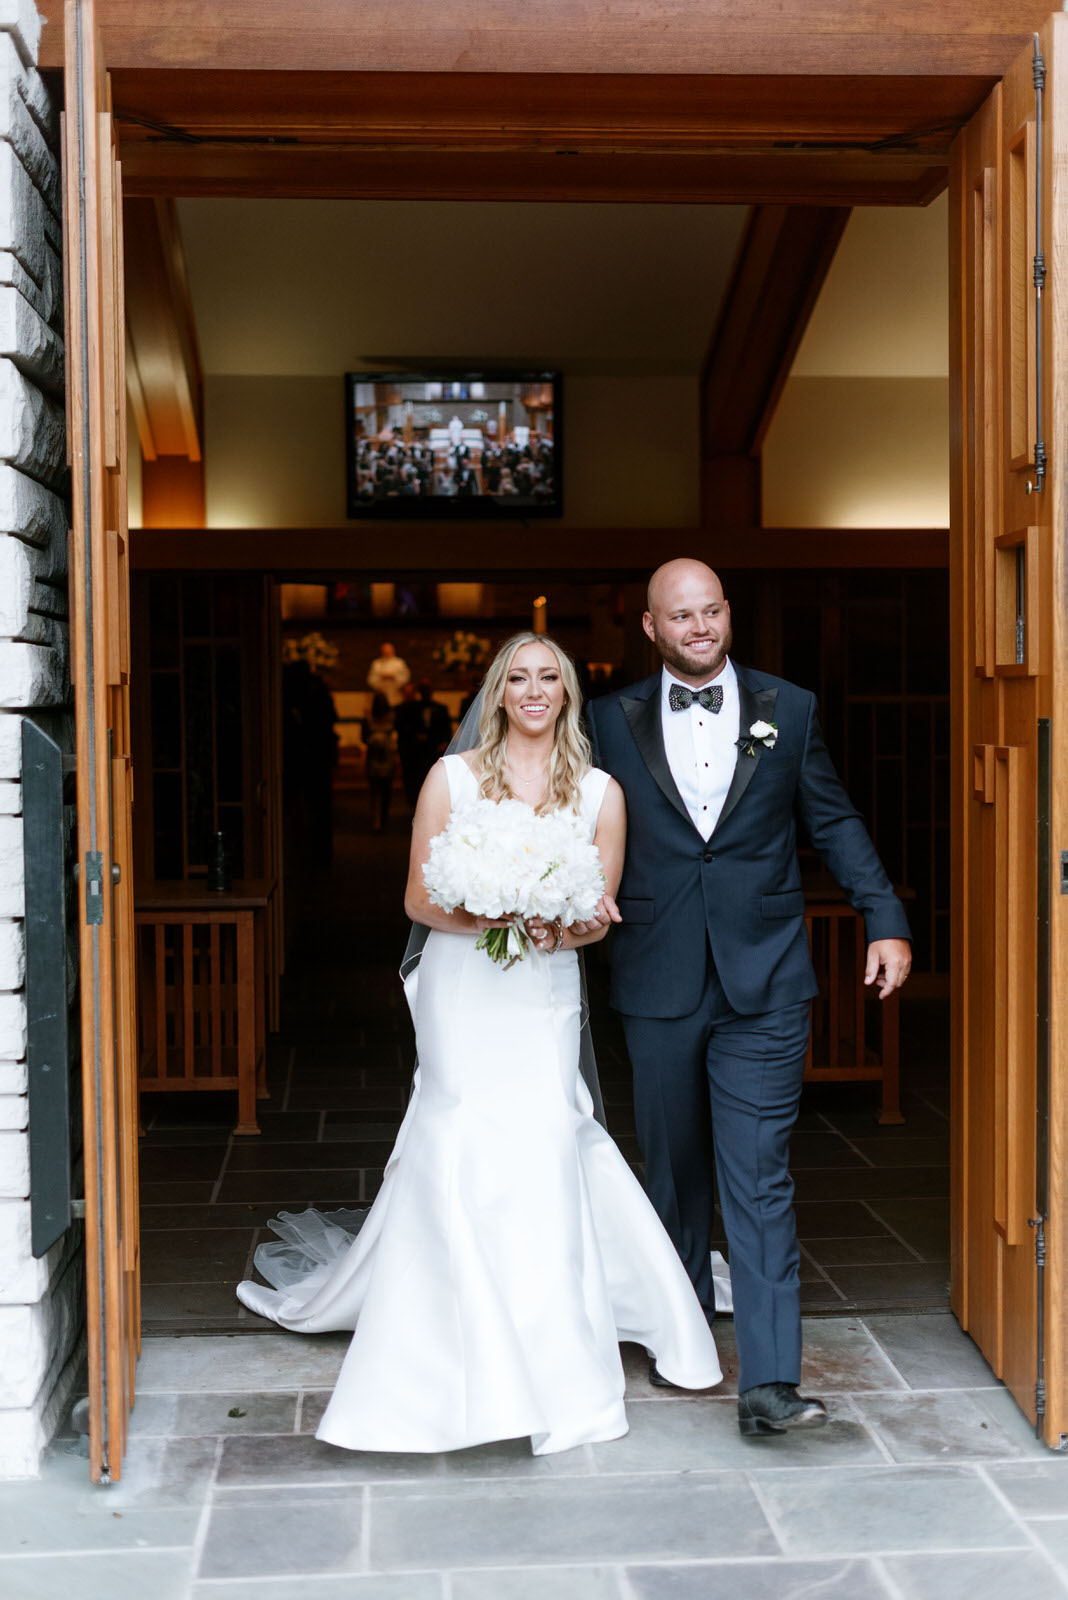 Bride and groom after wedding.Photography:  Josh & Dana Fernandez , Event Design & Floral:  Maxit Flower Design , Event Planner: Emily Moise,  Keely Thorne Events